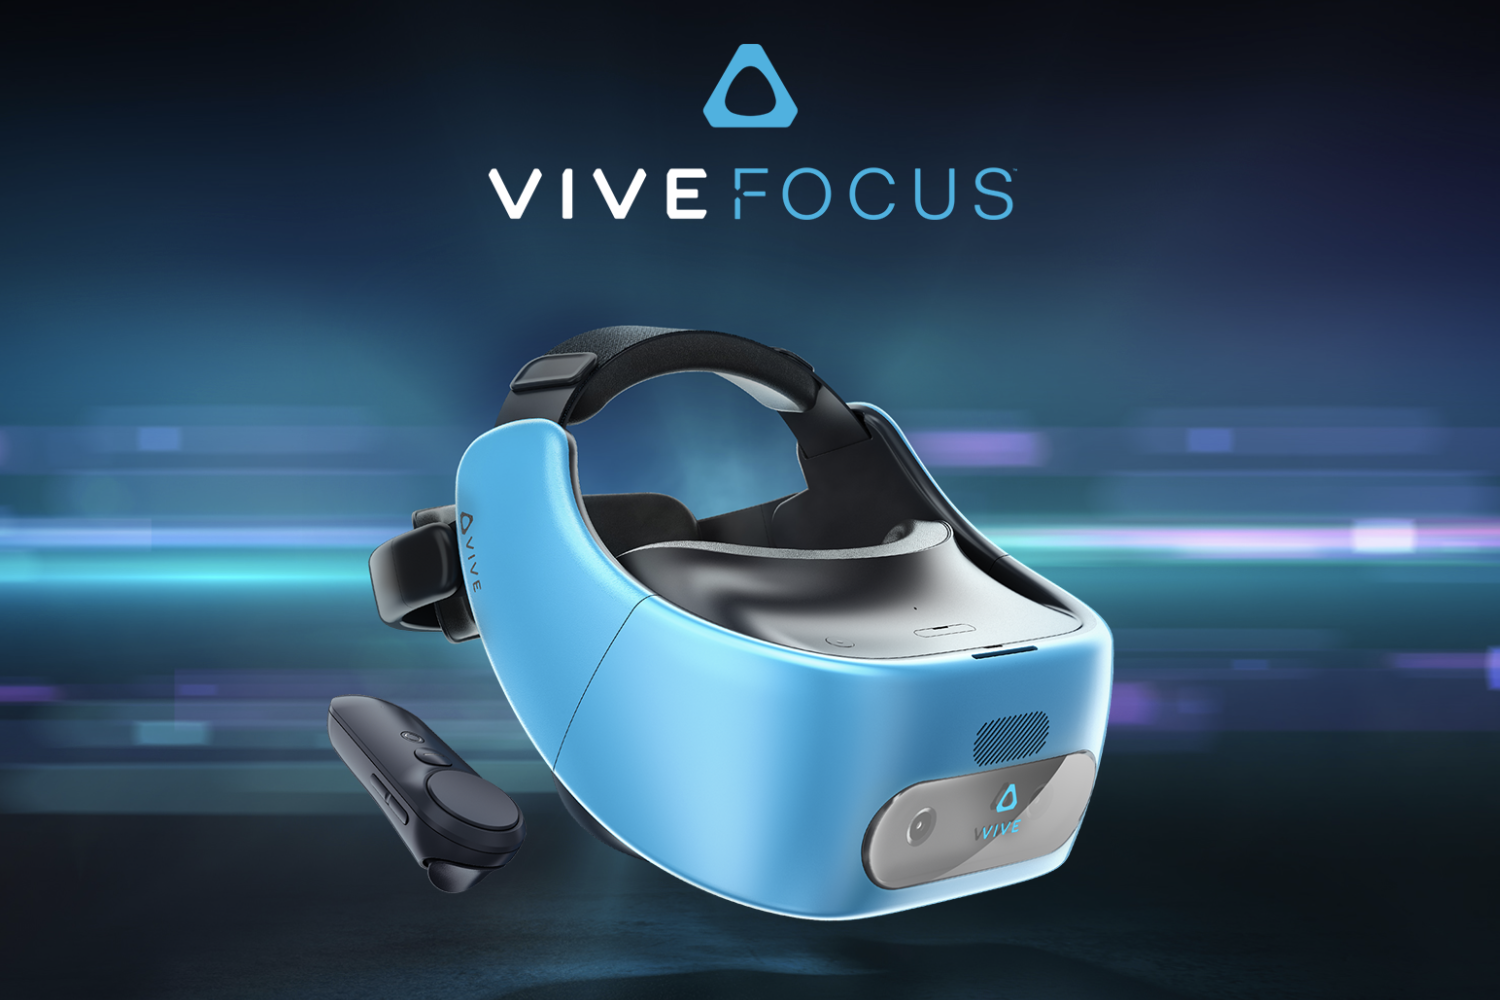 HTC Announces Vive Focus Standalone VR Headset Powered By Snapdragon 835 SoC